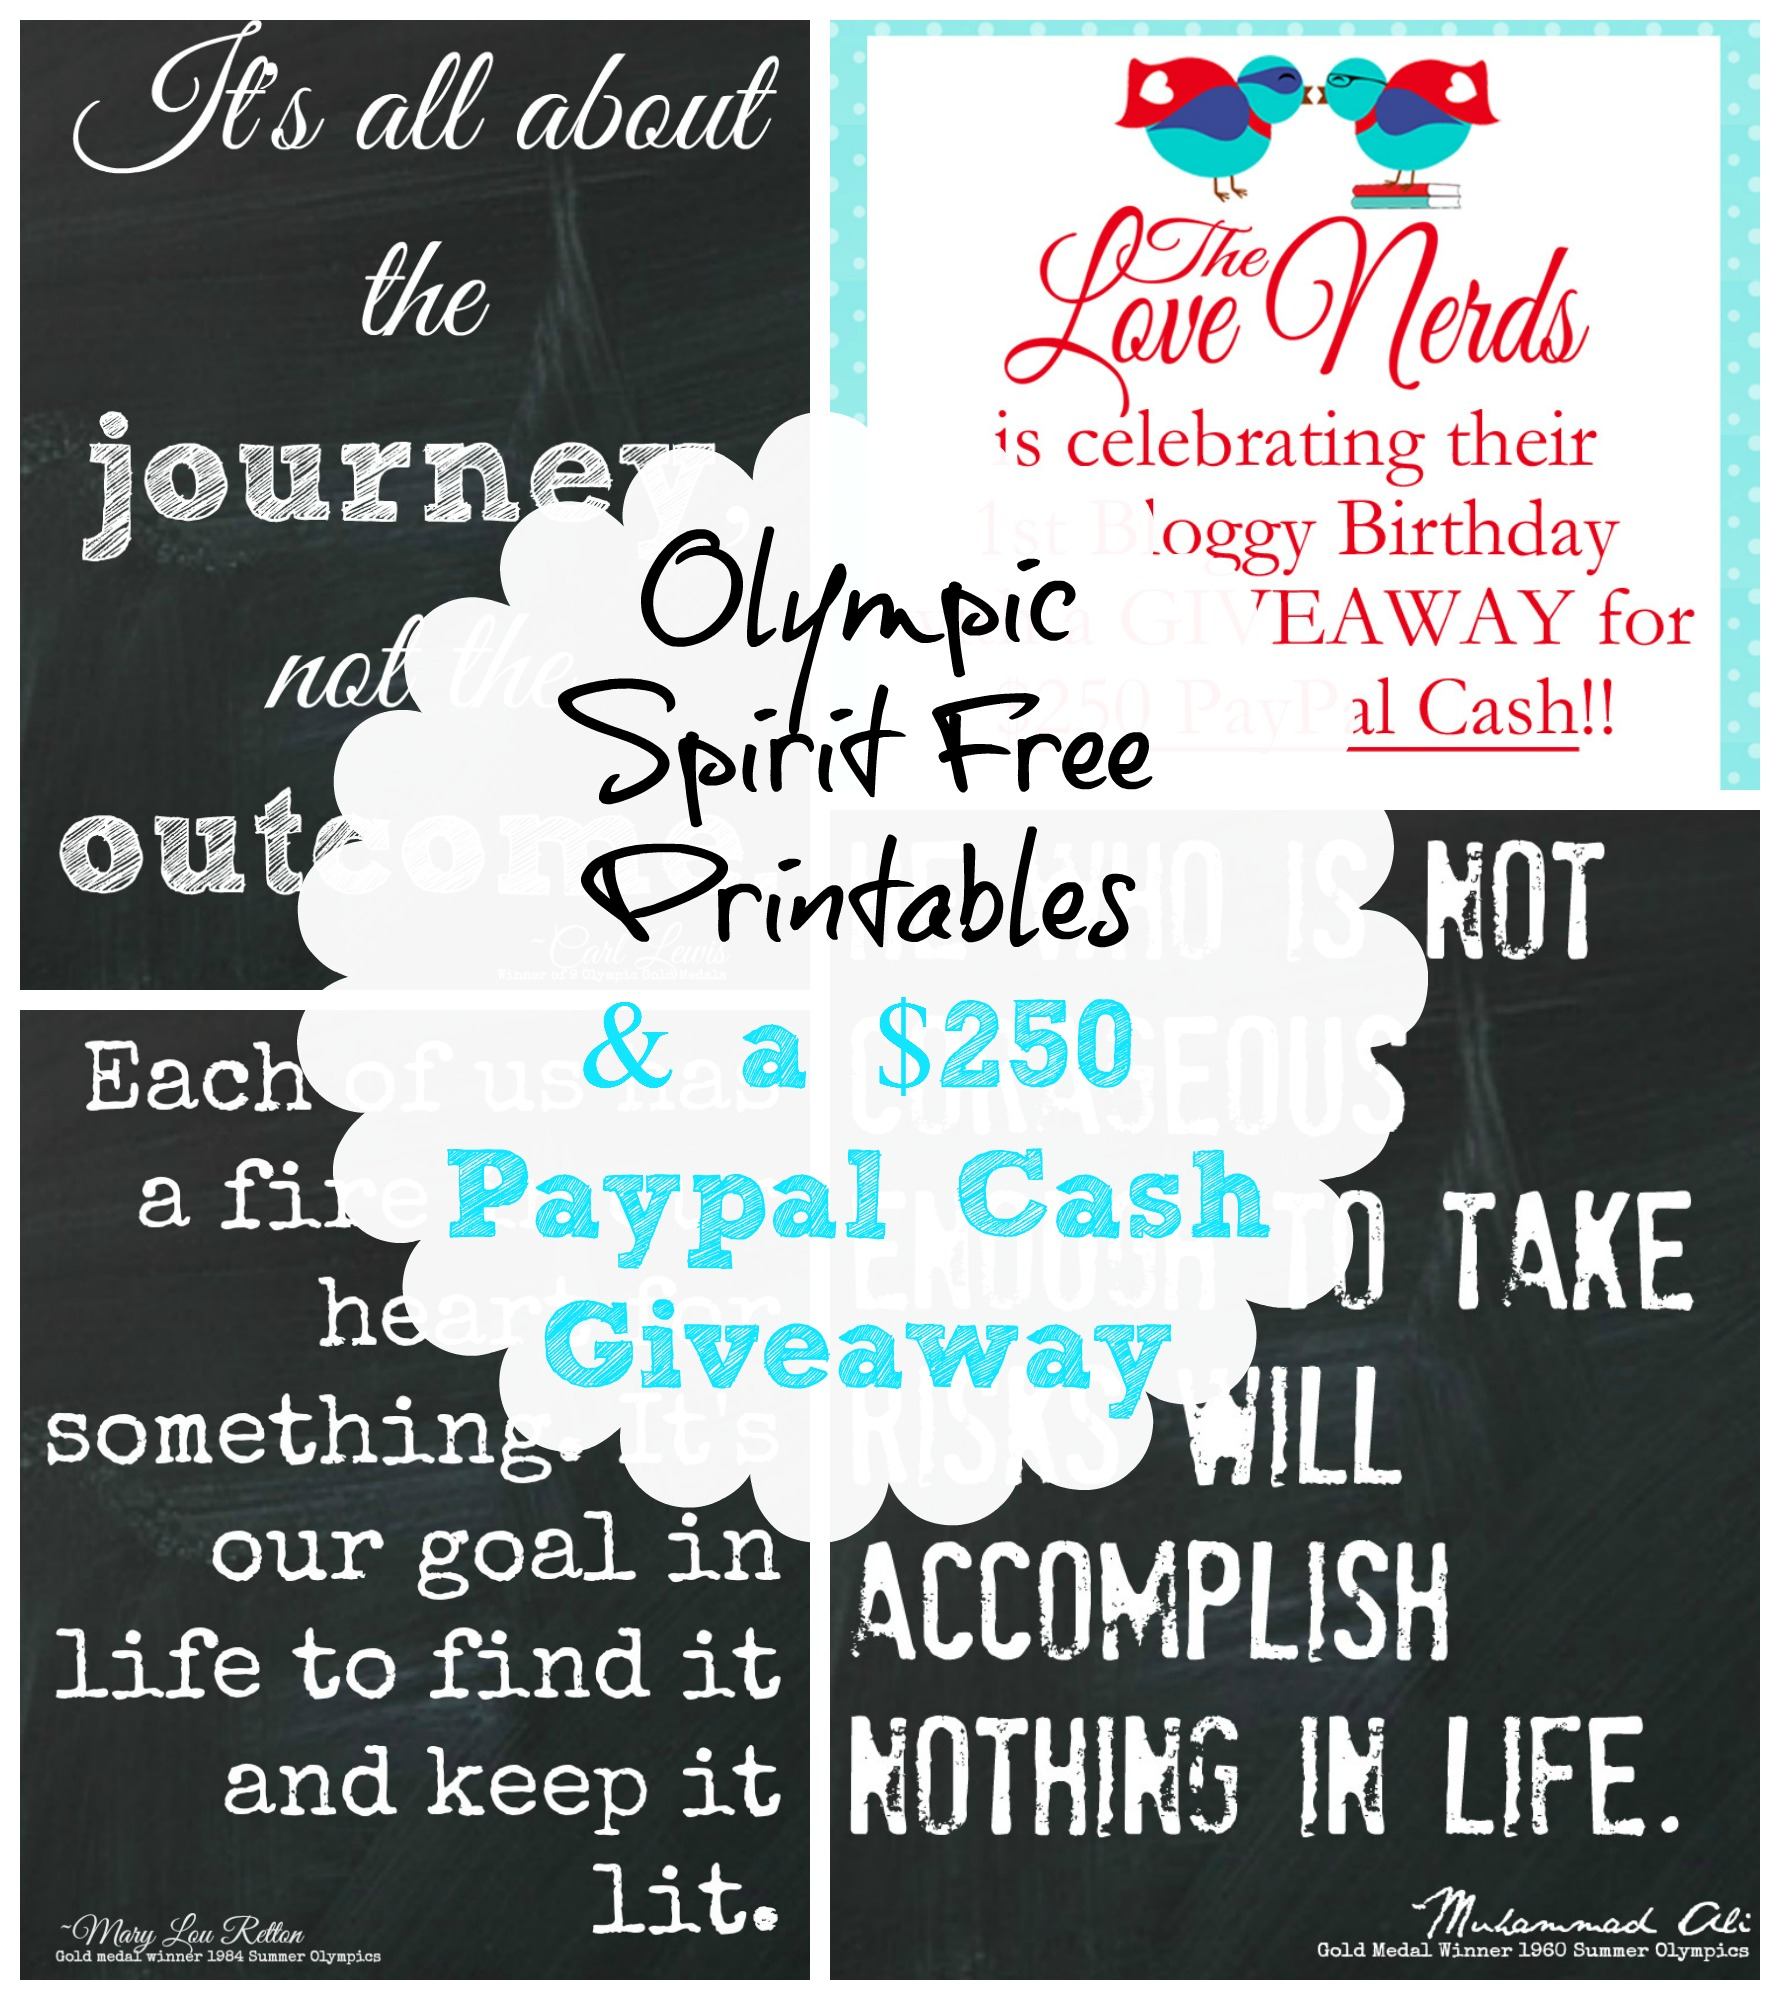 Olympic Spirit Printables Amp 250 Paypal Cash Giveaway